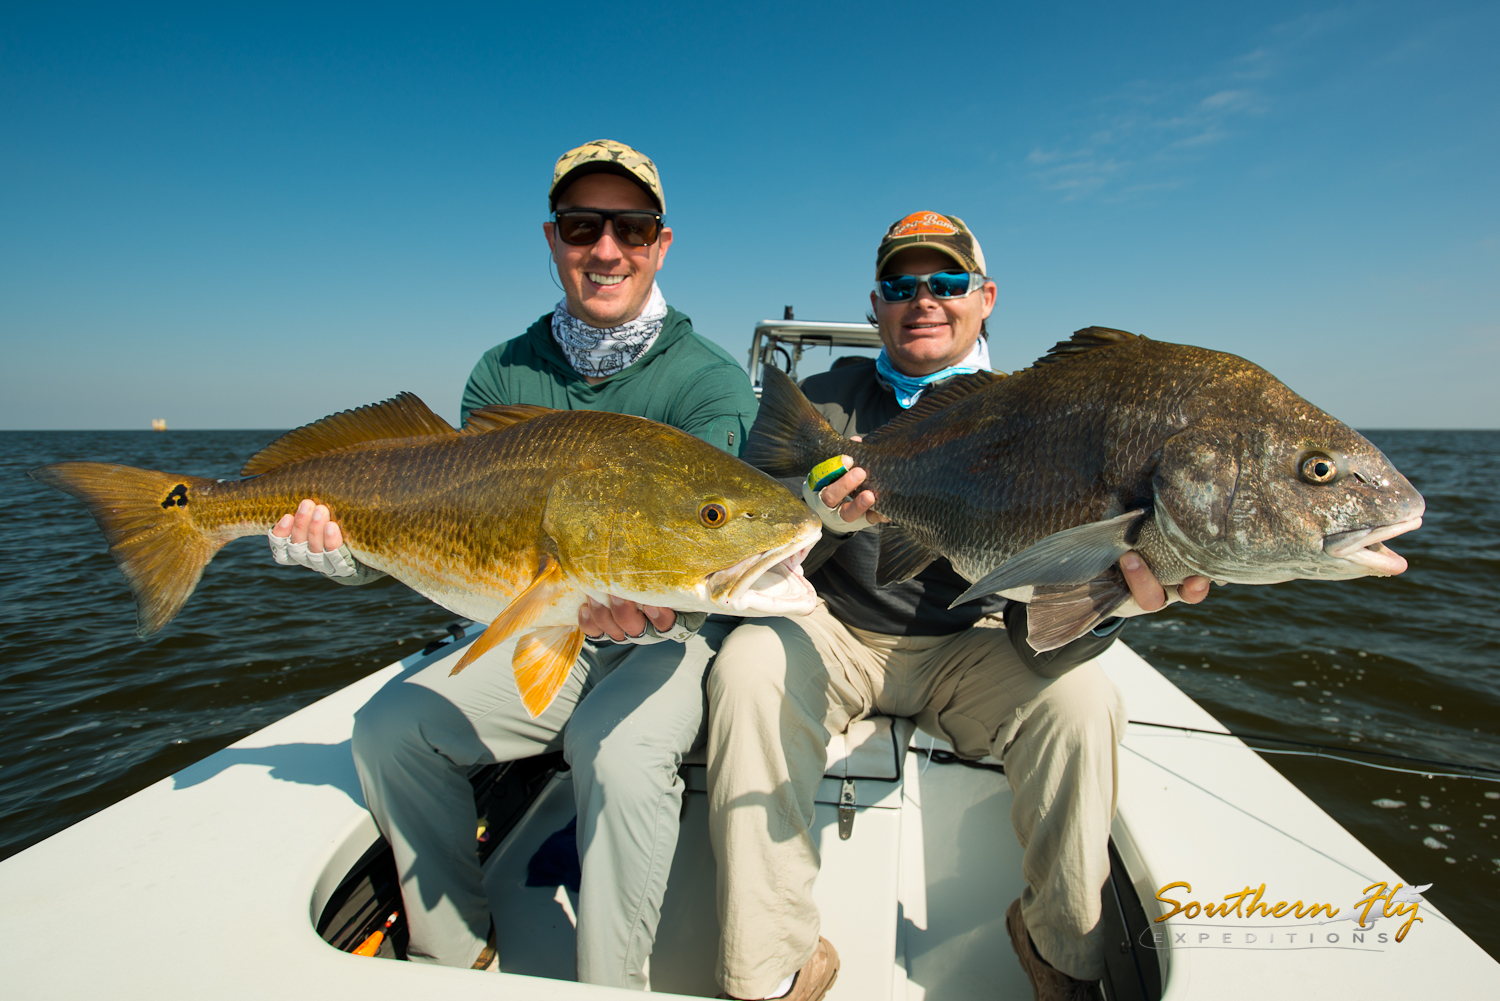 2016-11-13-15_SouthernFlyExpeditions_WesWillard_and_JacobKing-12.jpg